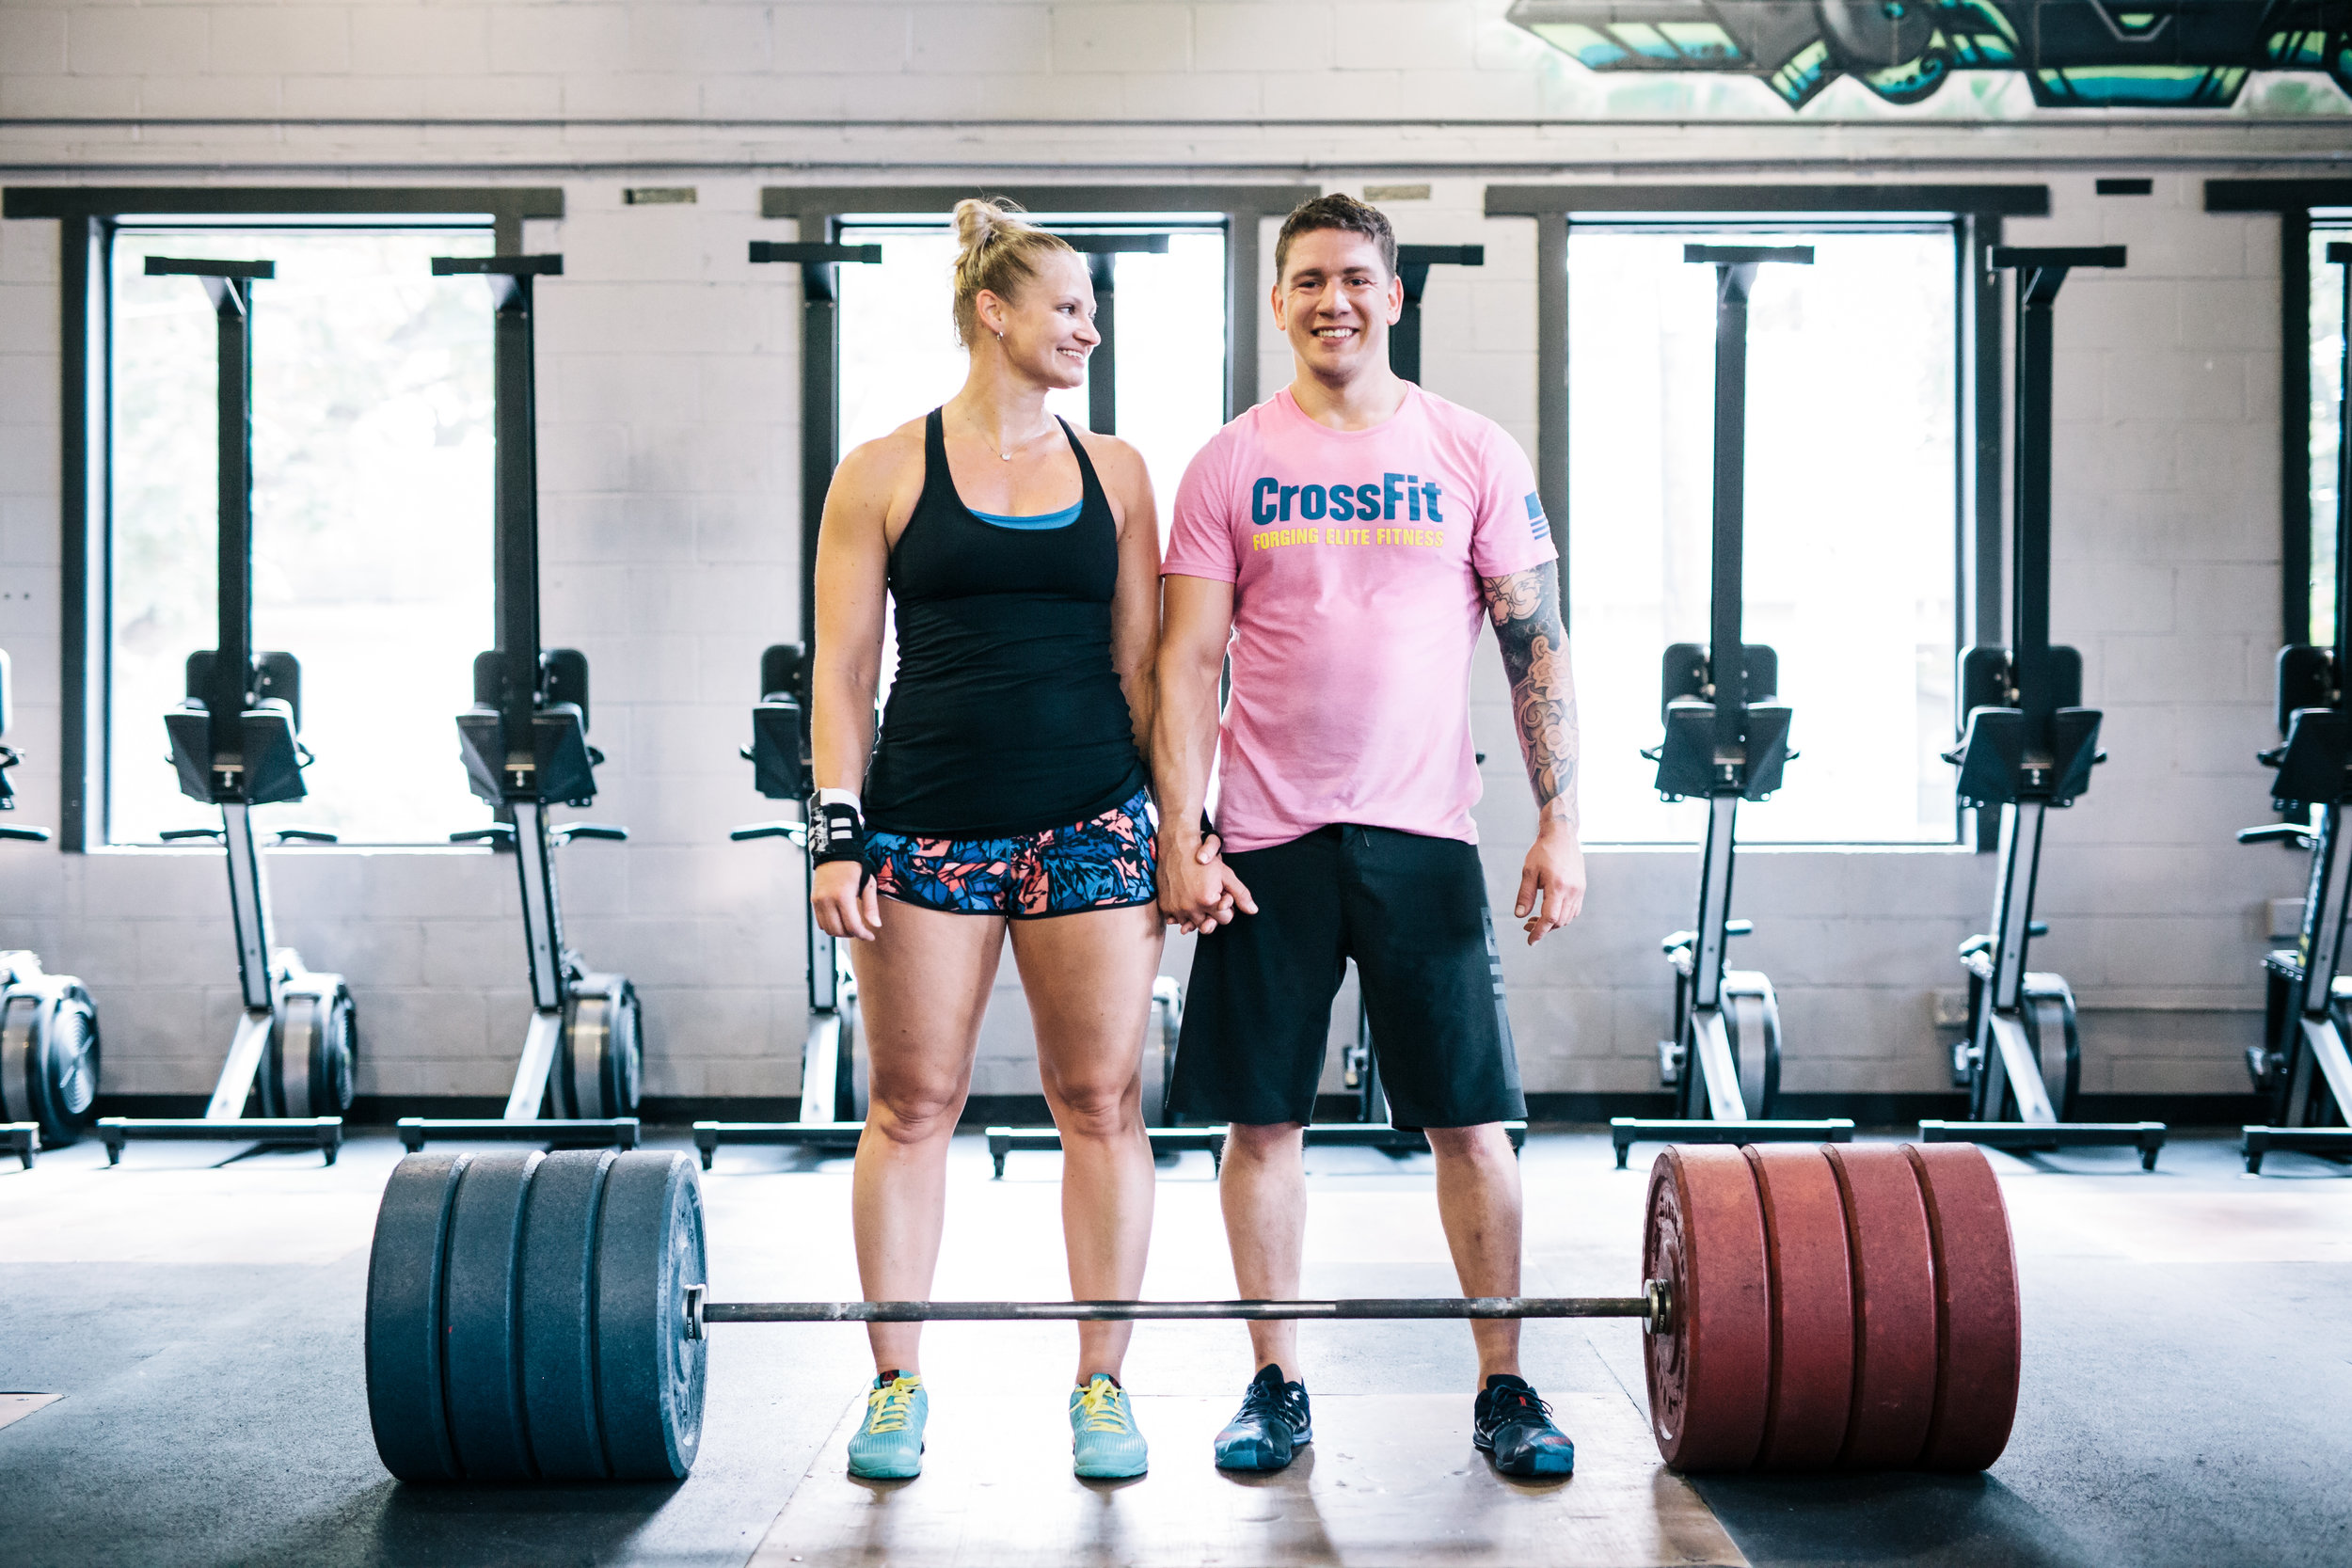 crossfit couple